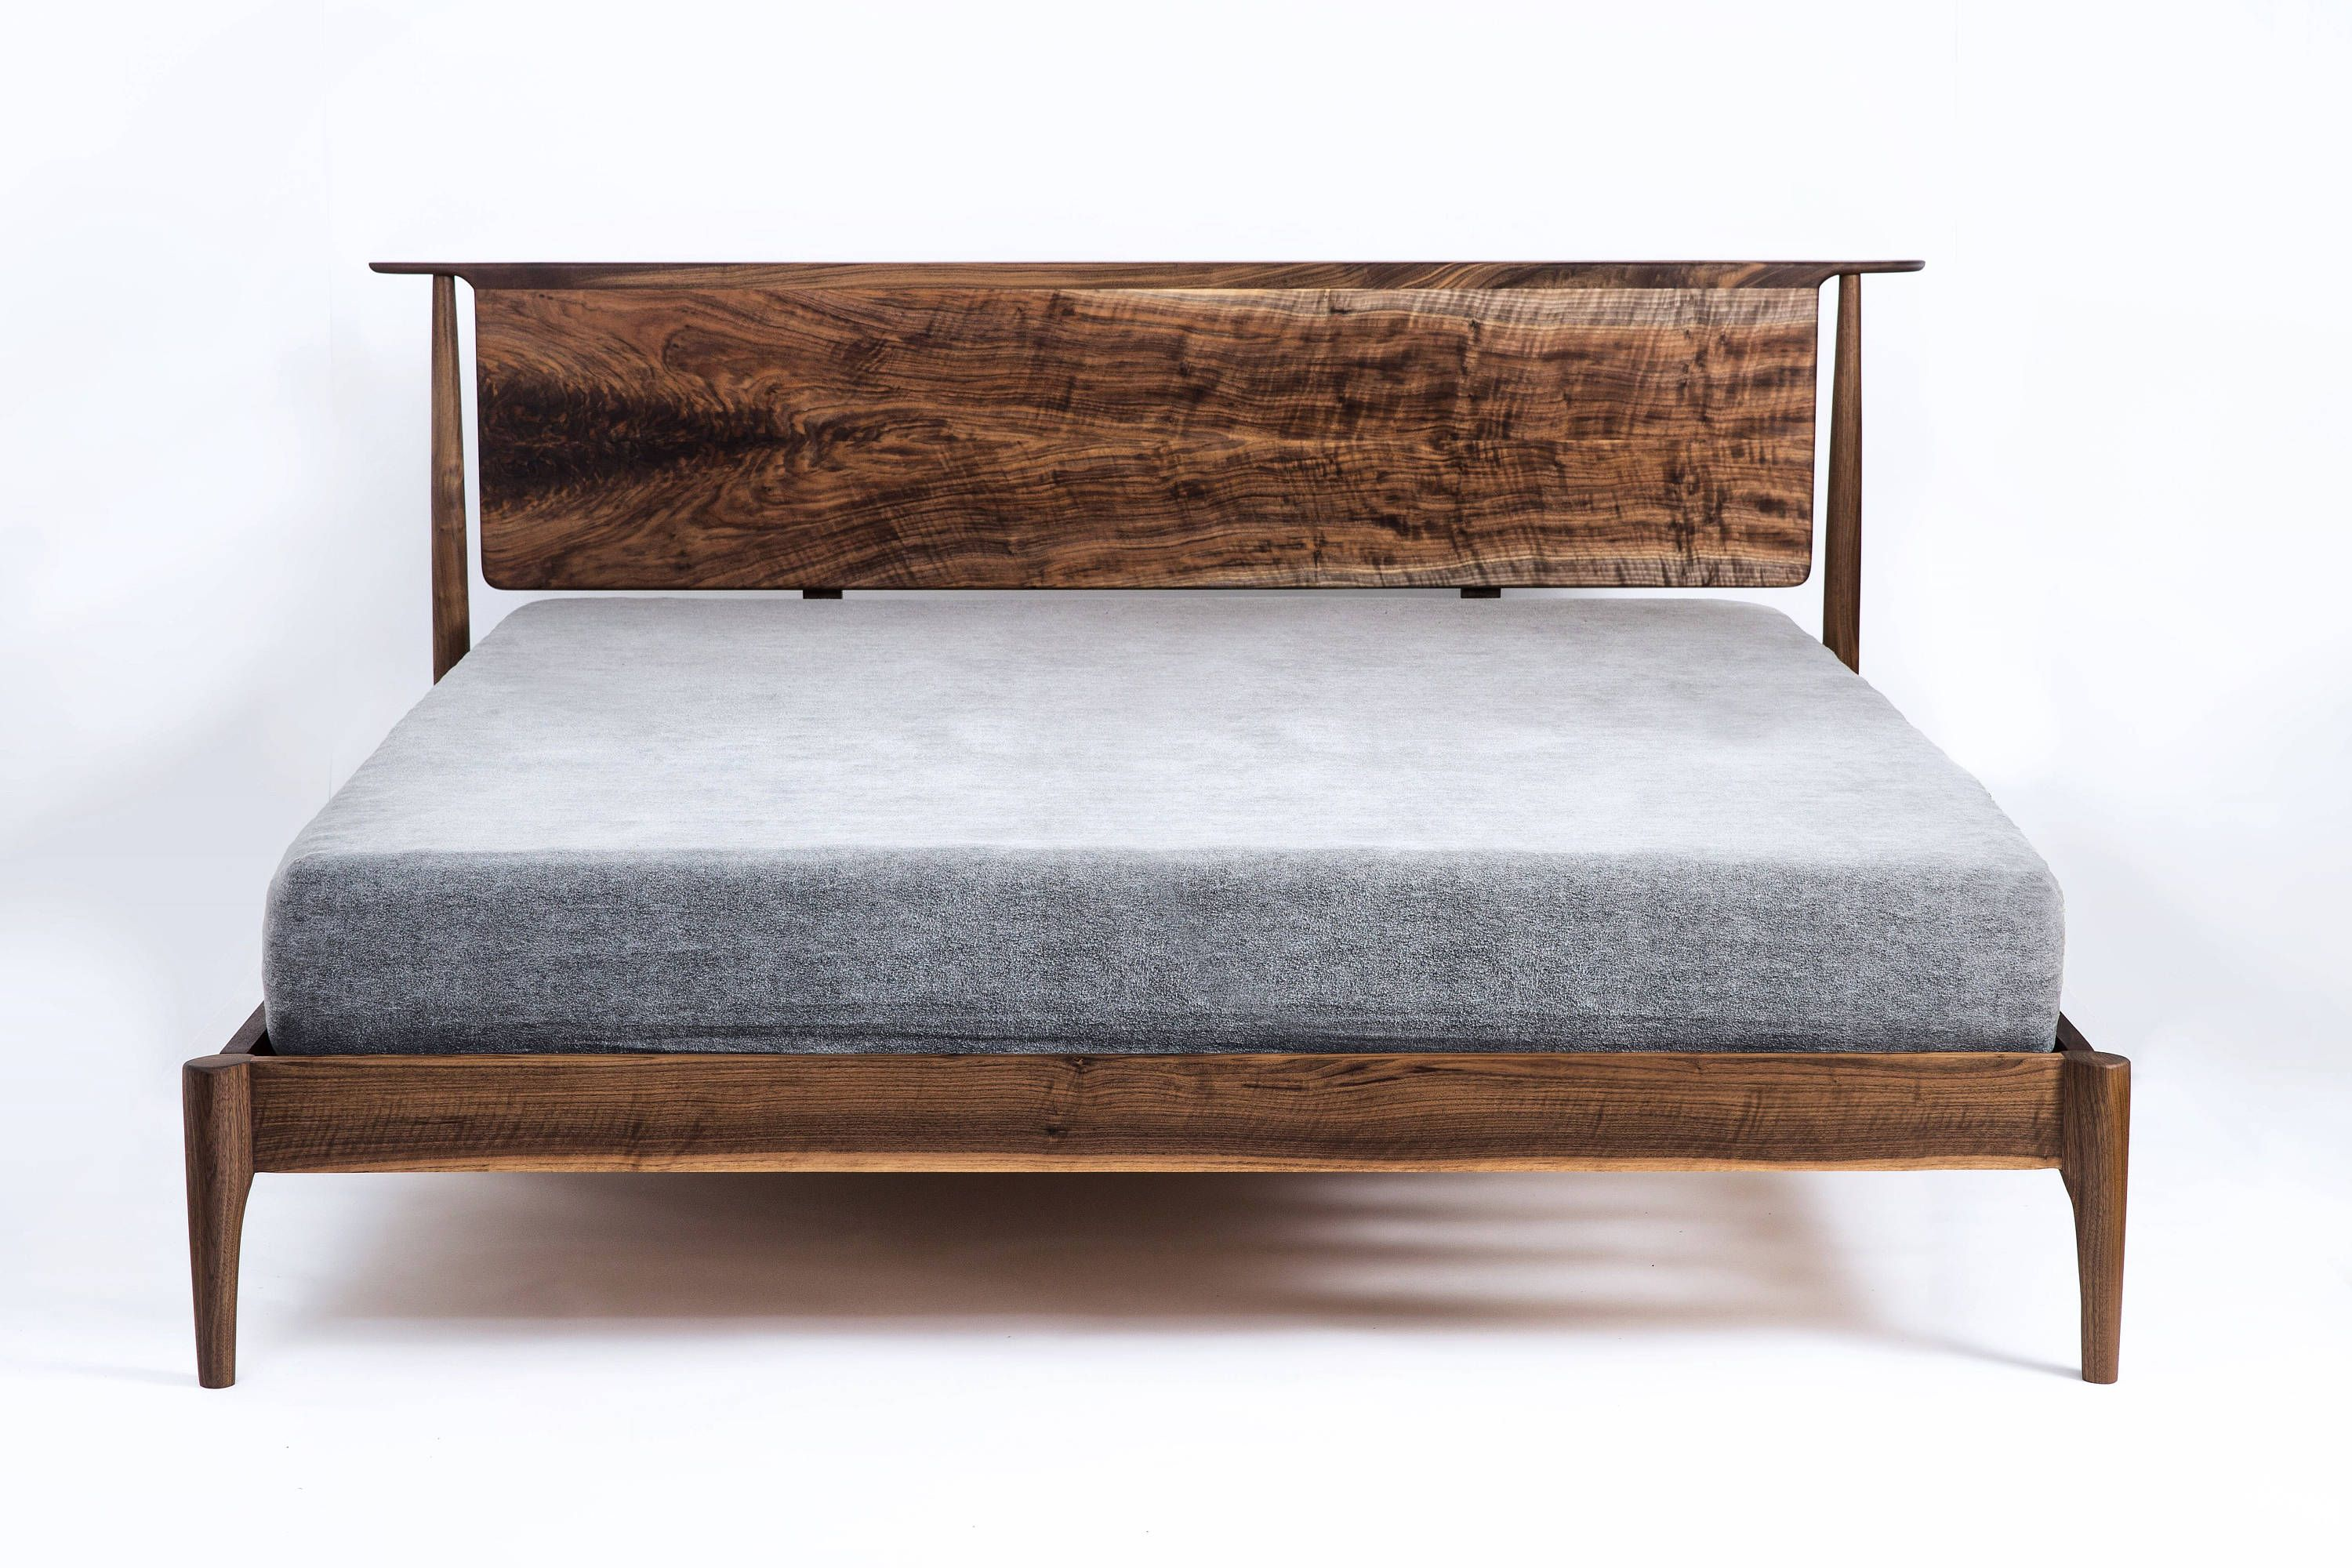 Platform bed, Scandinavian Design Walnut Platform Bed, Mid